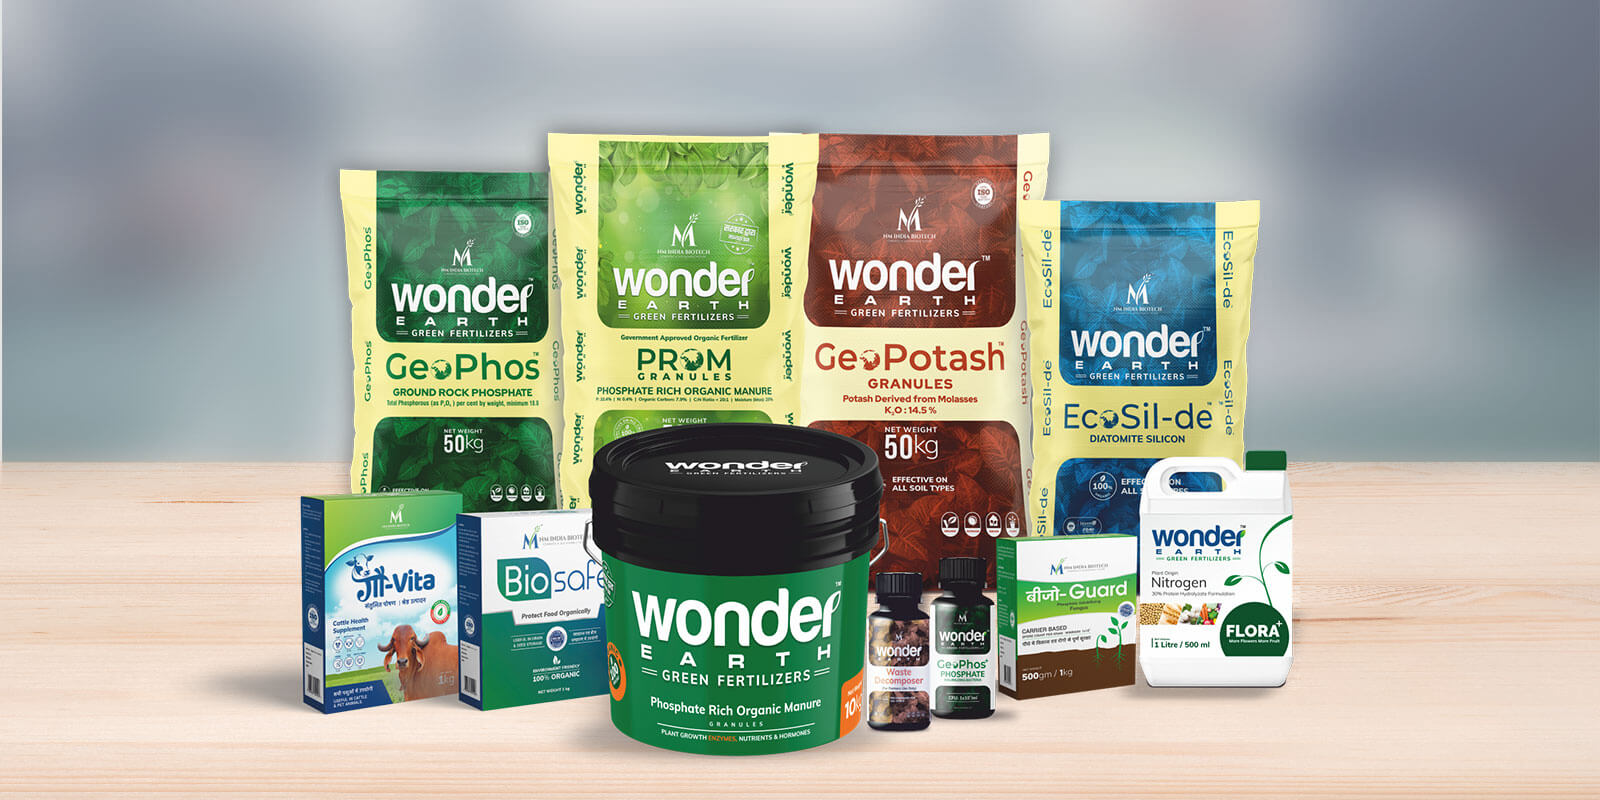 Wonder Earth PROM | Plant Nutrition Product | NM India Biotech